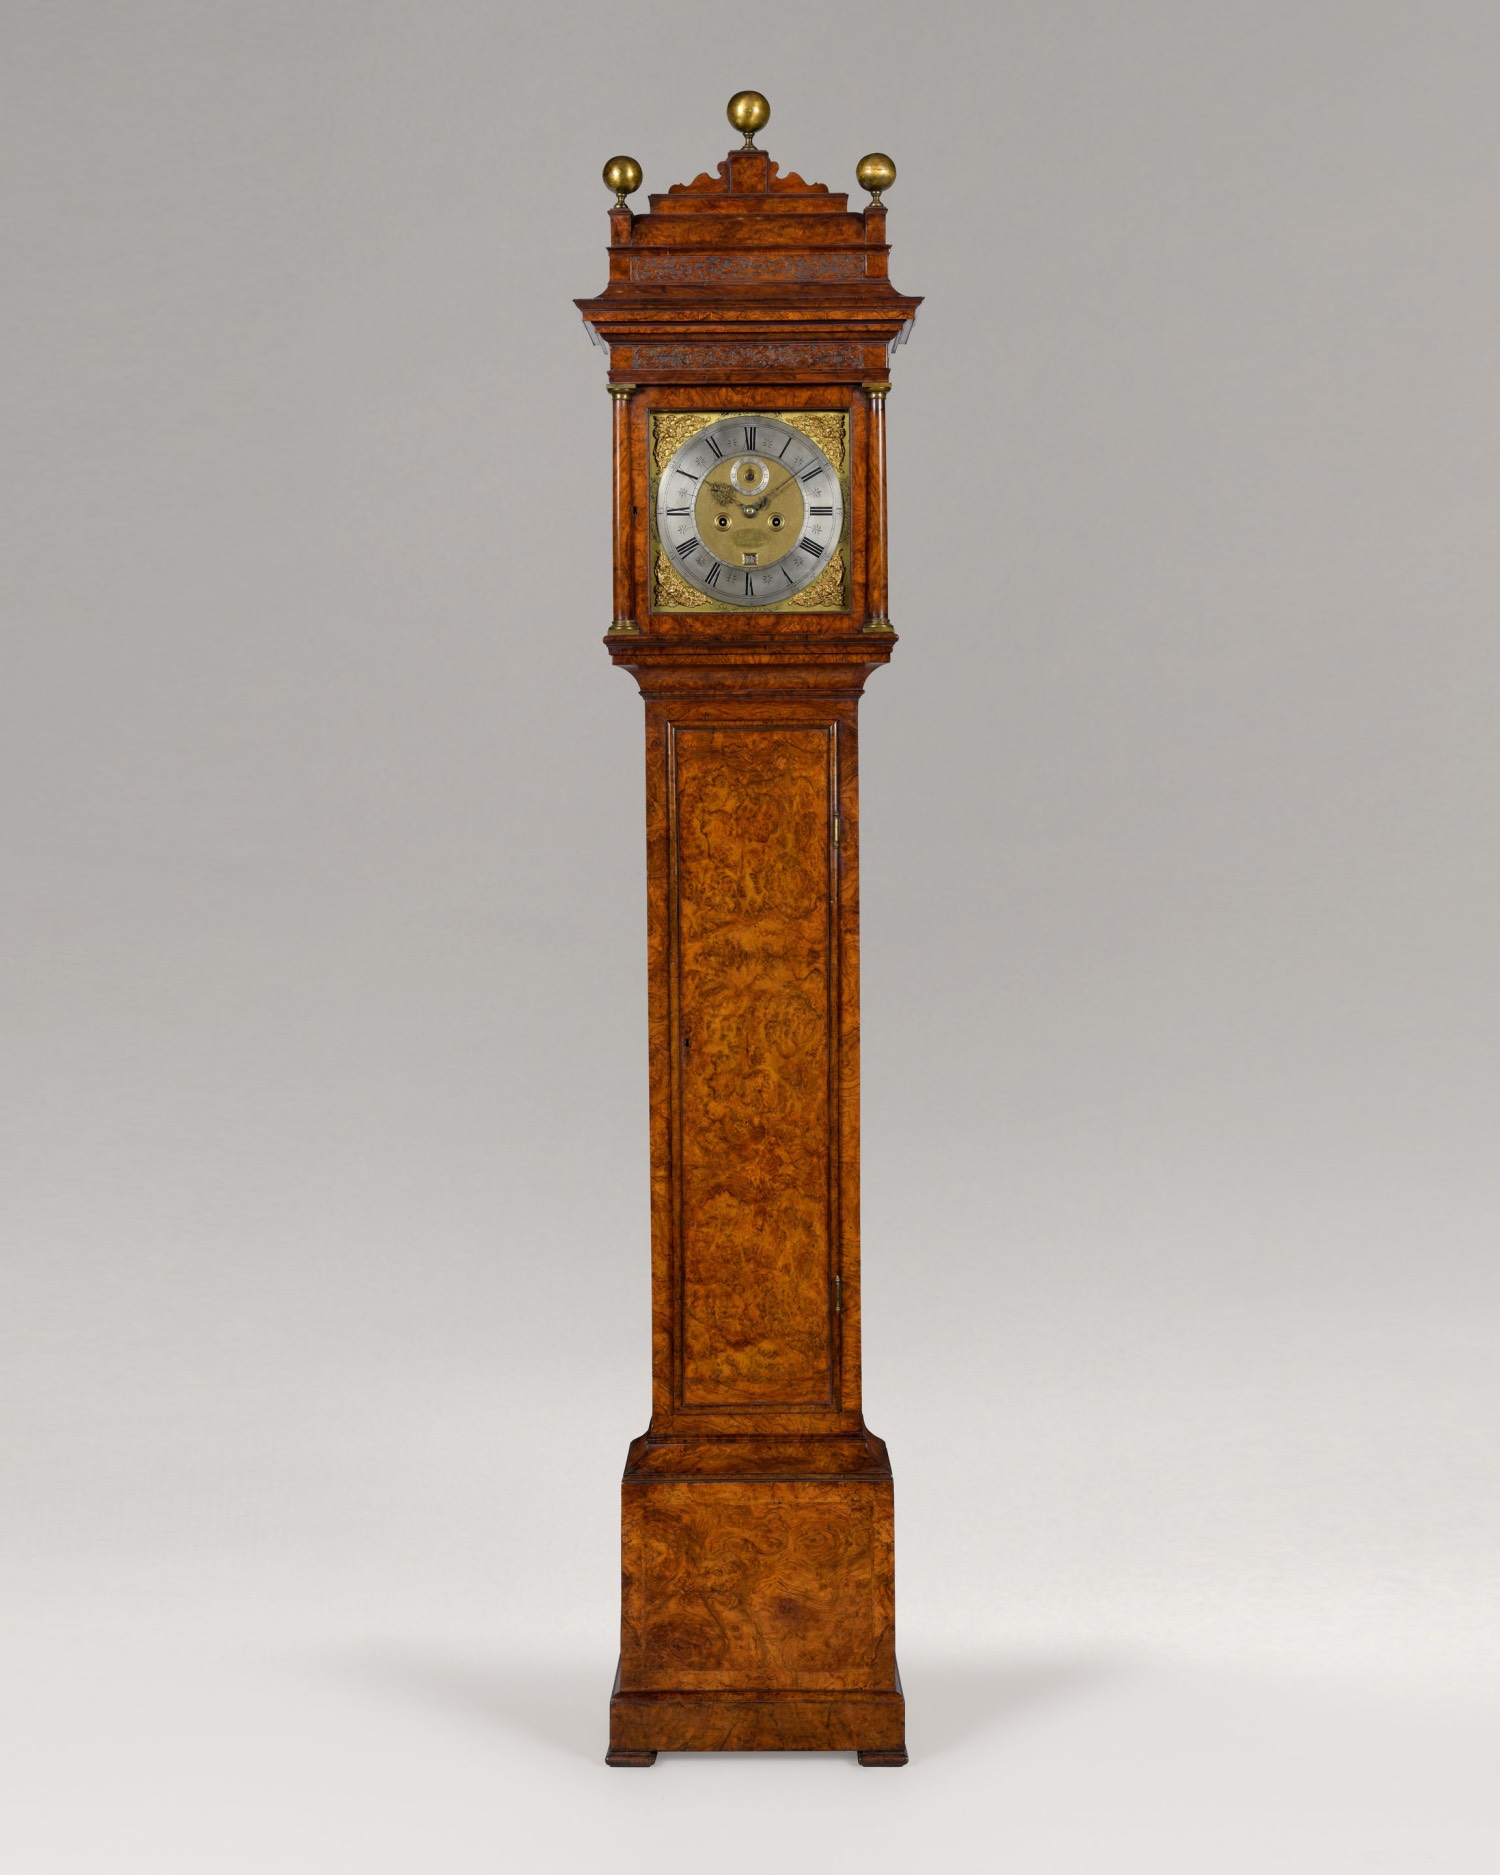 CHRISTOPHER GOULD. AN EXCEPTIONAL QUEEN ANNE PERIOD BURR WALNUT LONGCASE CLOCK WITH SQUARE DIAL AND CADDY TOP BY THIS FAMOUS MAKER.